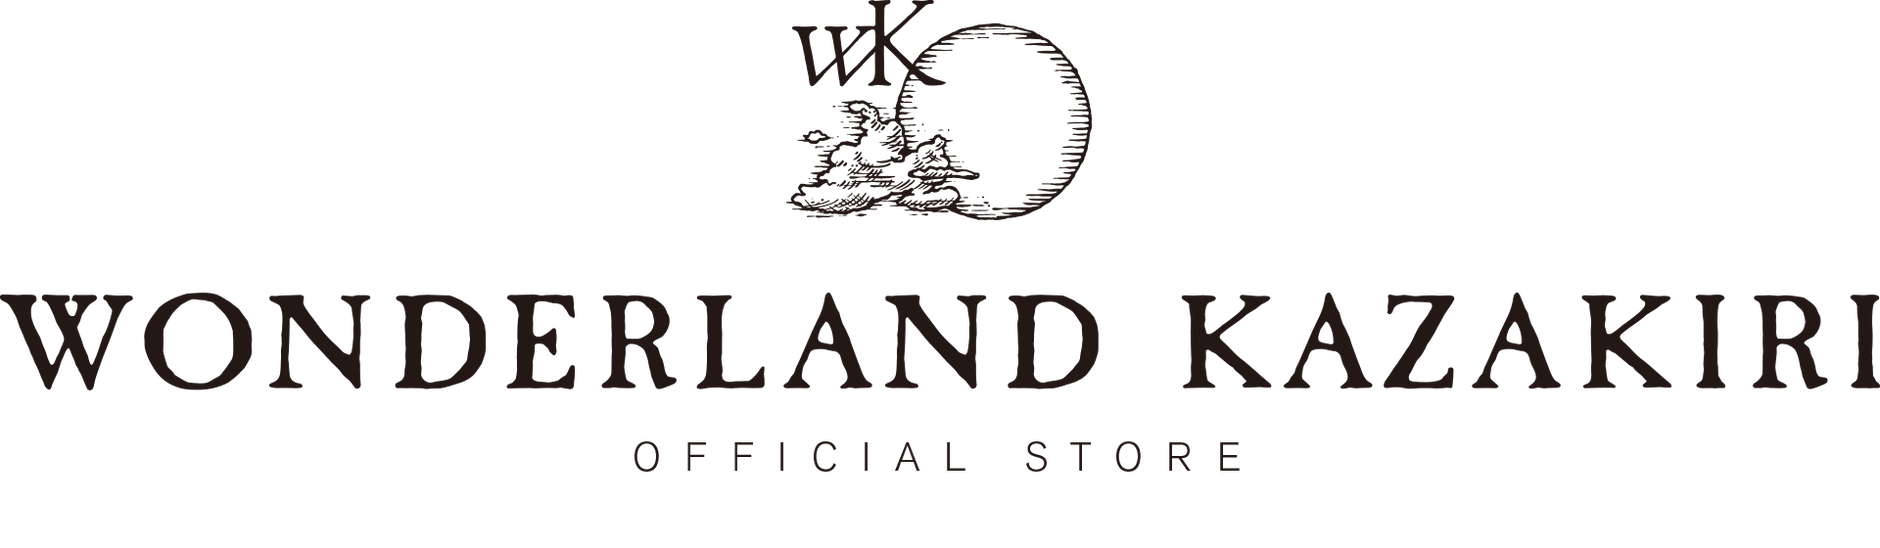 Wonderland Kazakiri Official Store